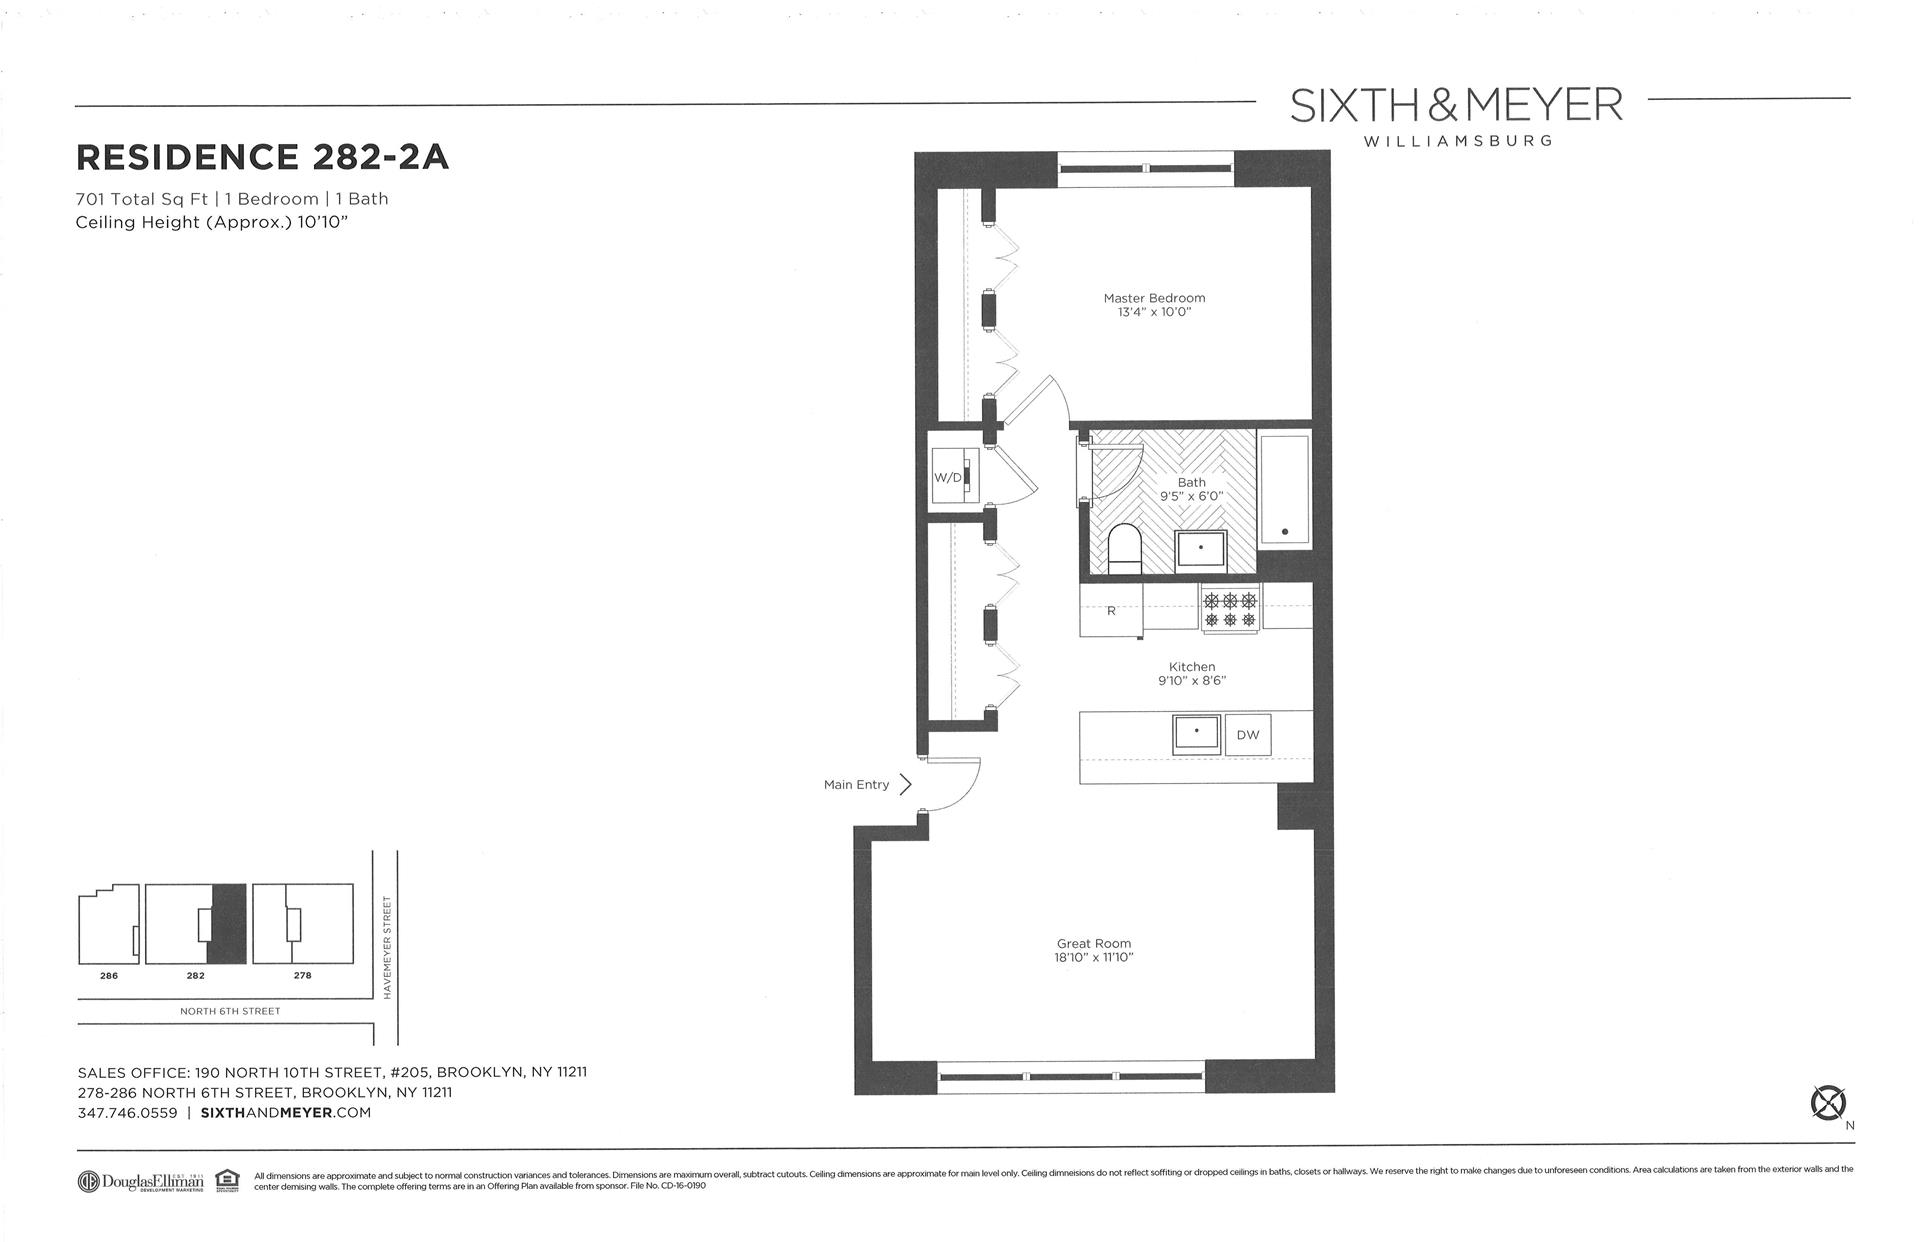 Floor plan of Sixth & Meyer, 278-286 North 6th St, 282/2A - Williamsburg, New York